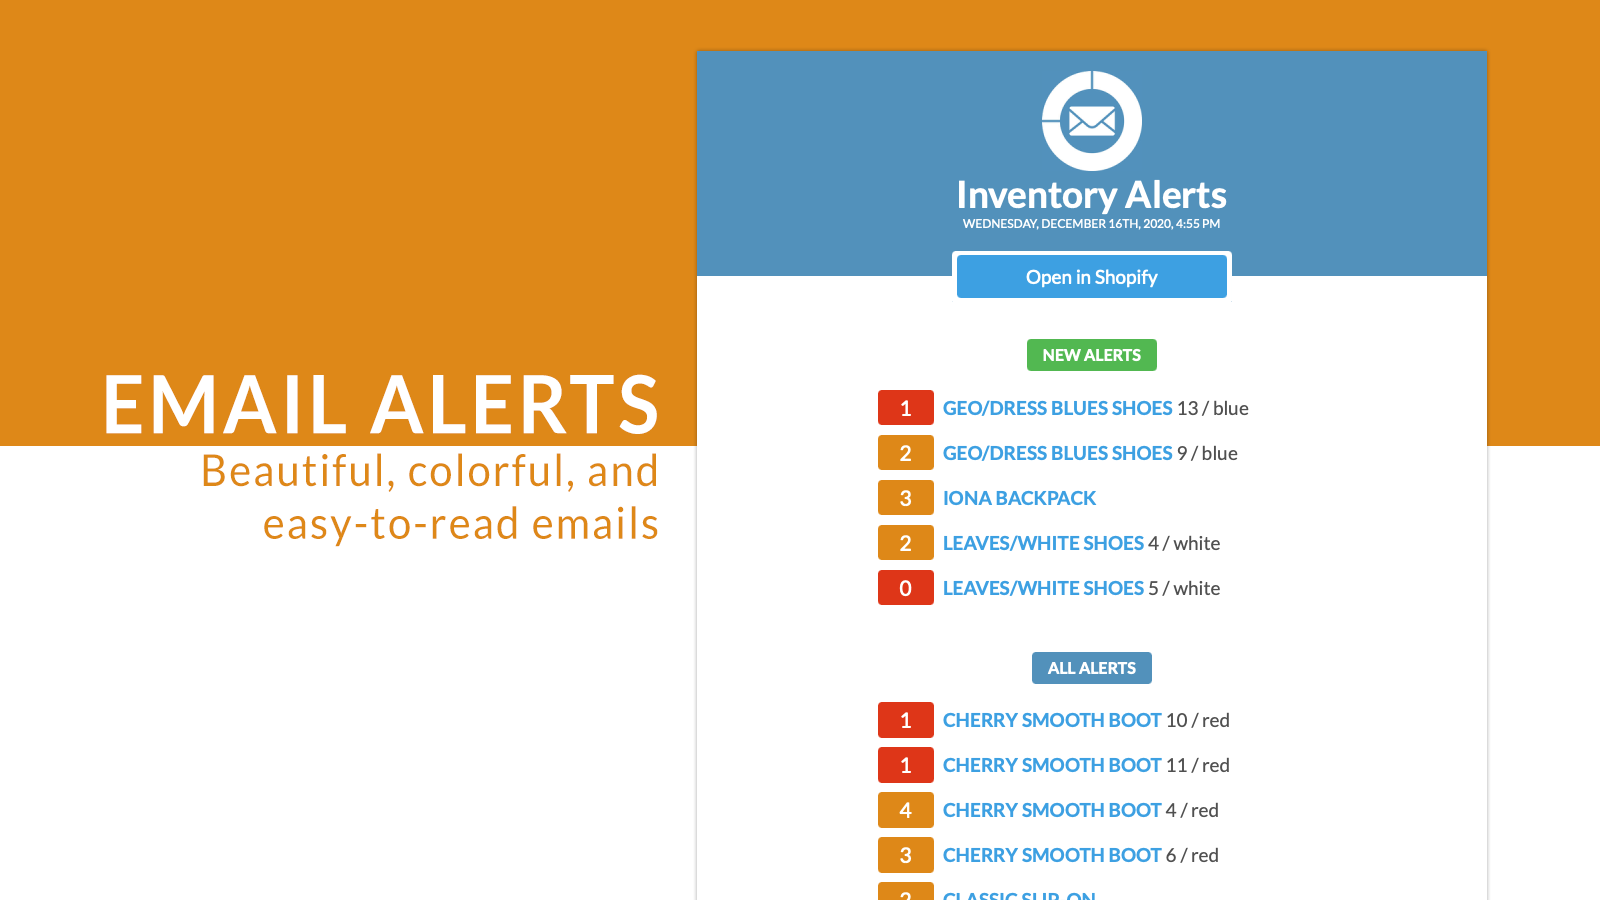 Beautiful, colorful, easy-to-read email alerts.